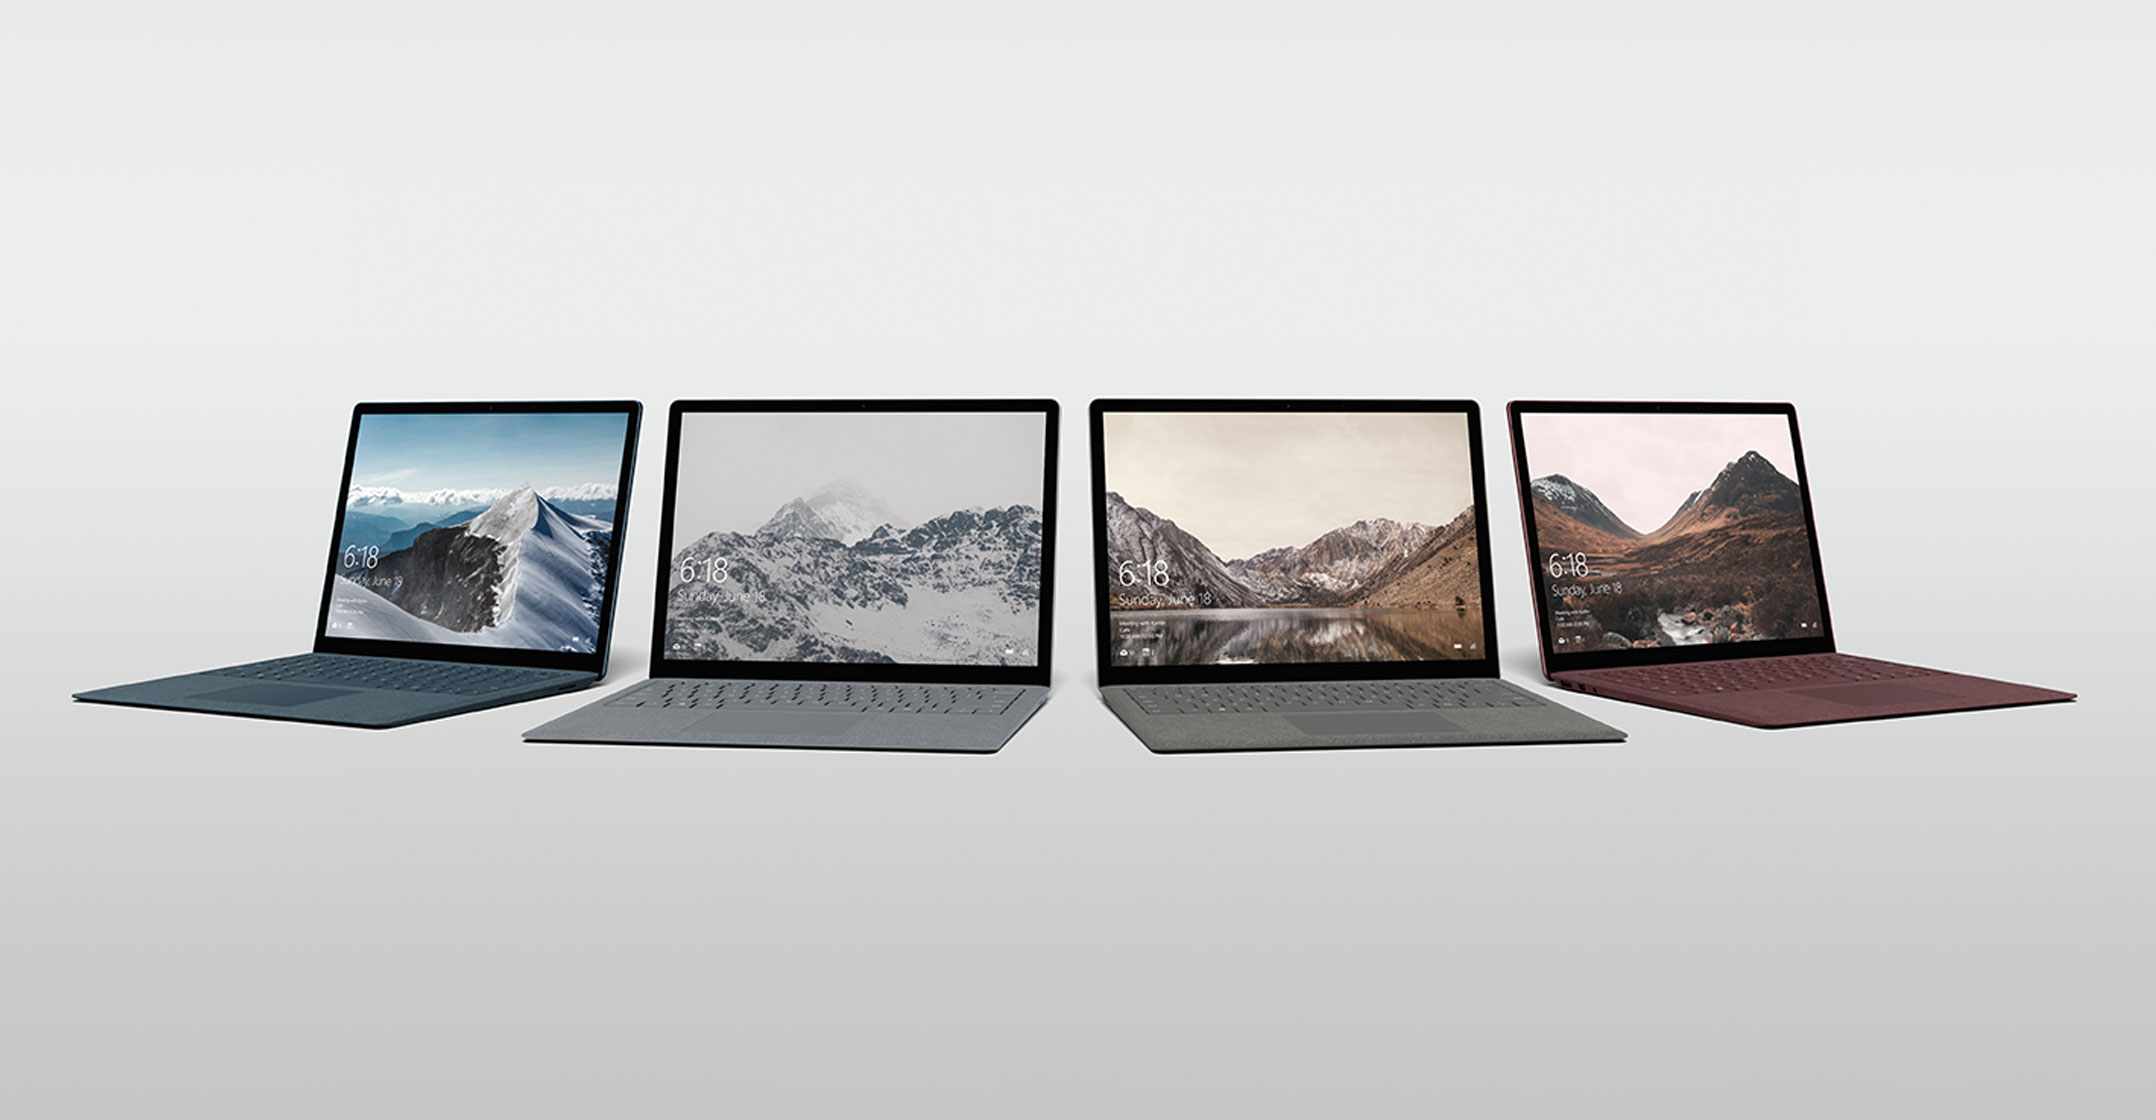 Microsoft launches first Surface devices in South Africa - TechCentral